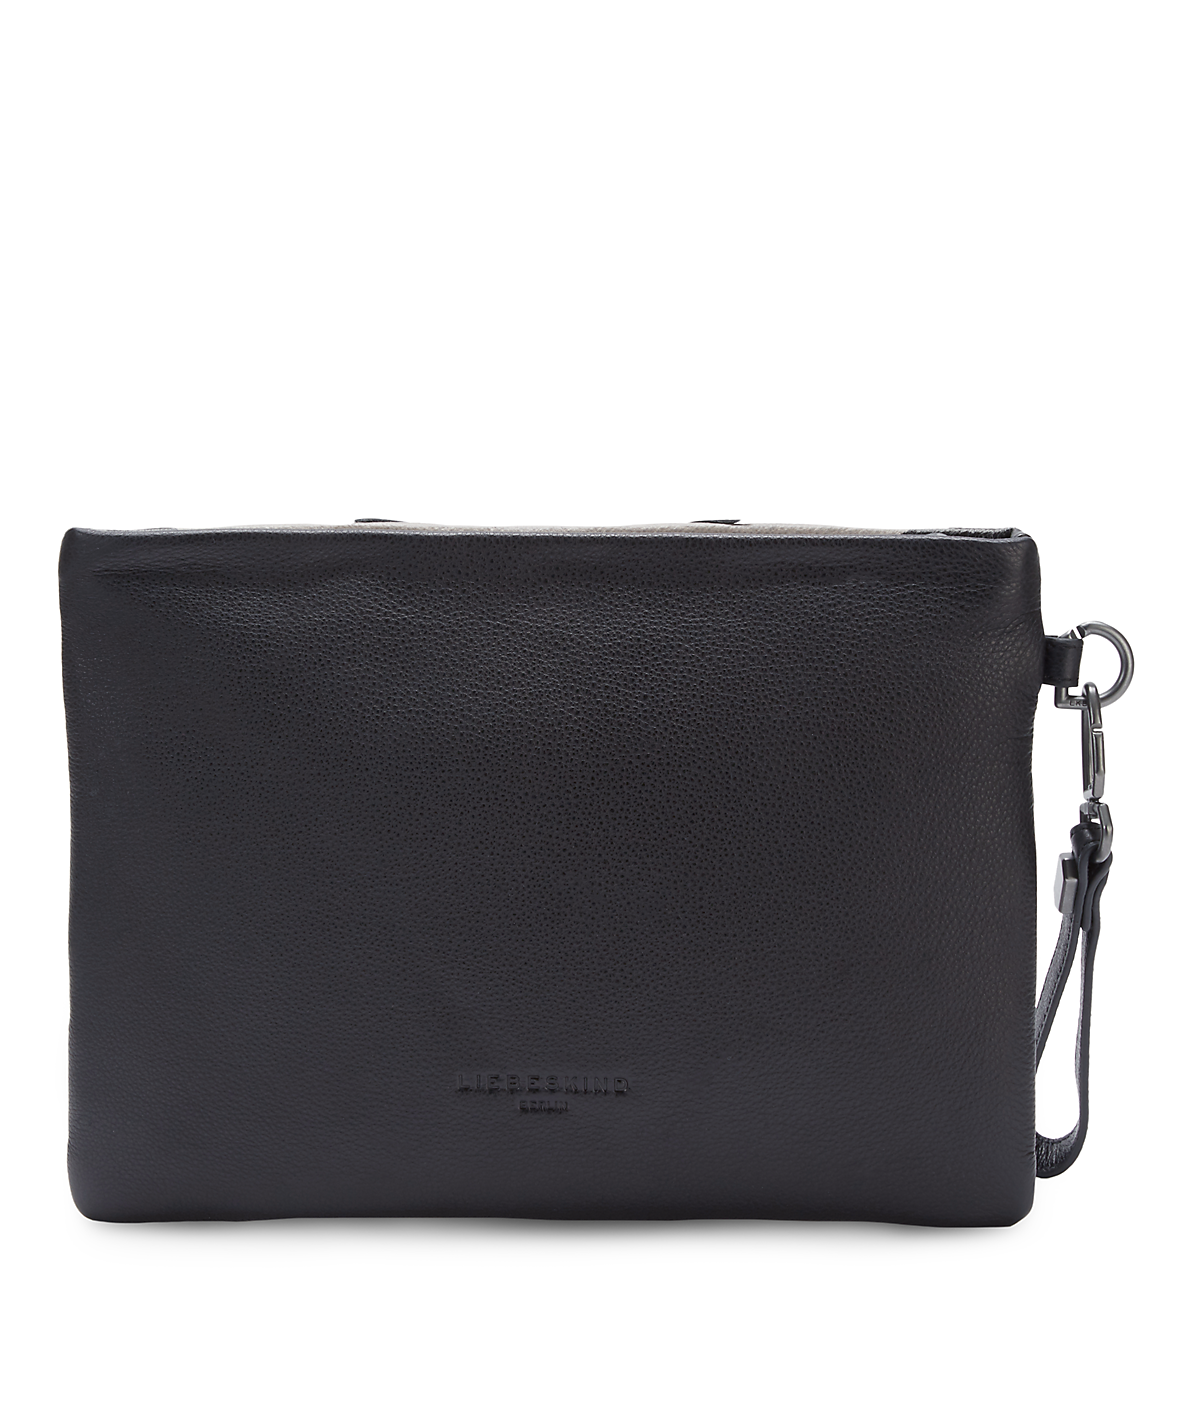 Makamba clutch from liebeskind